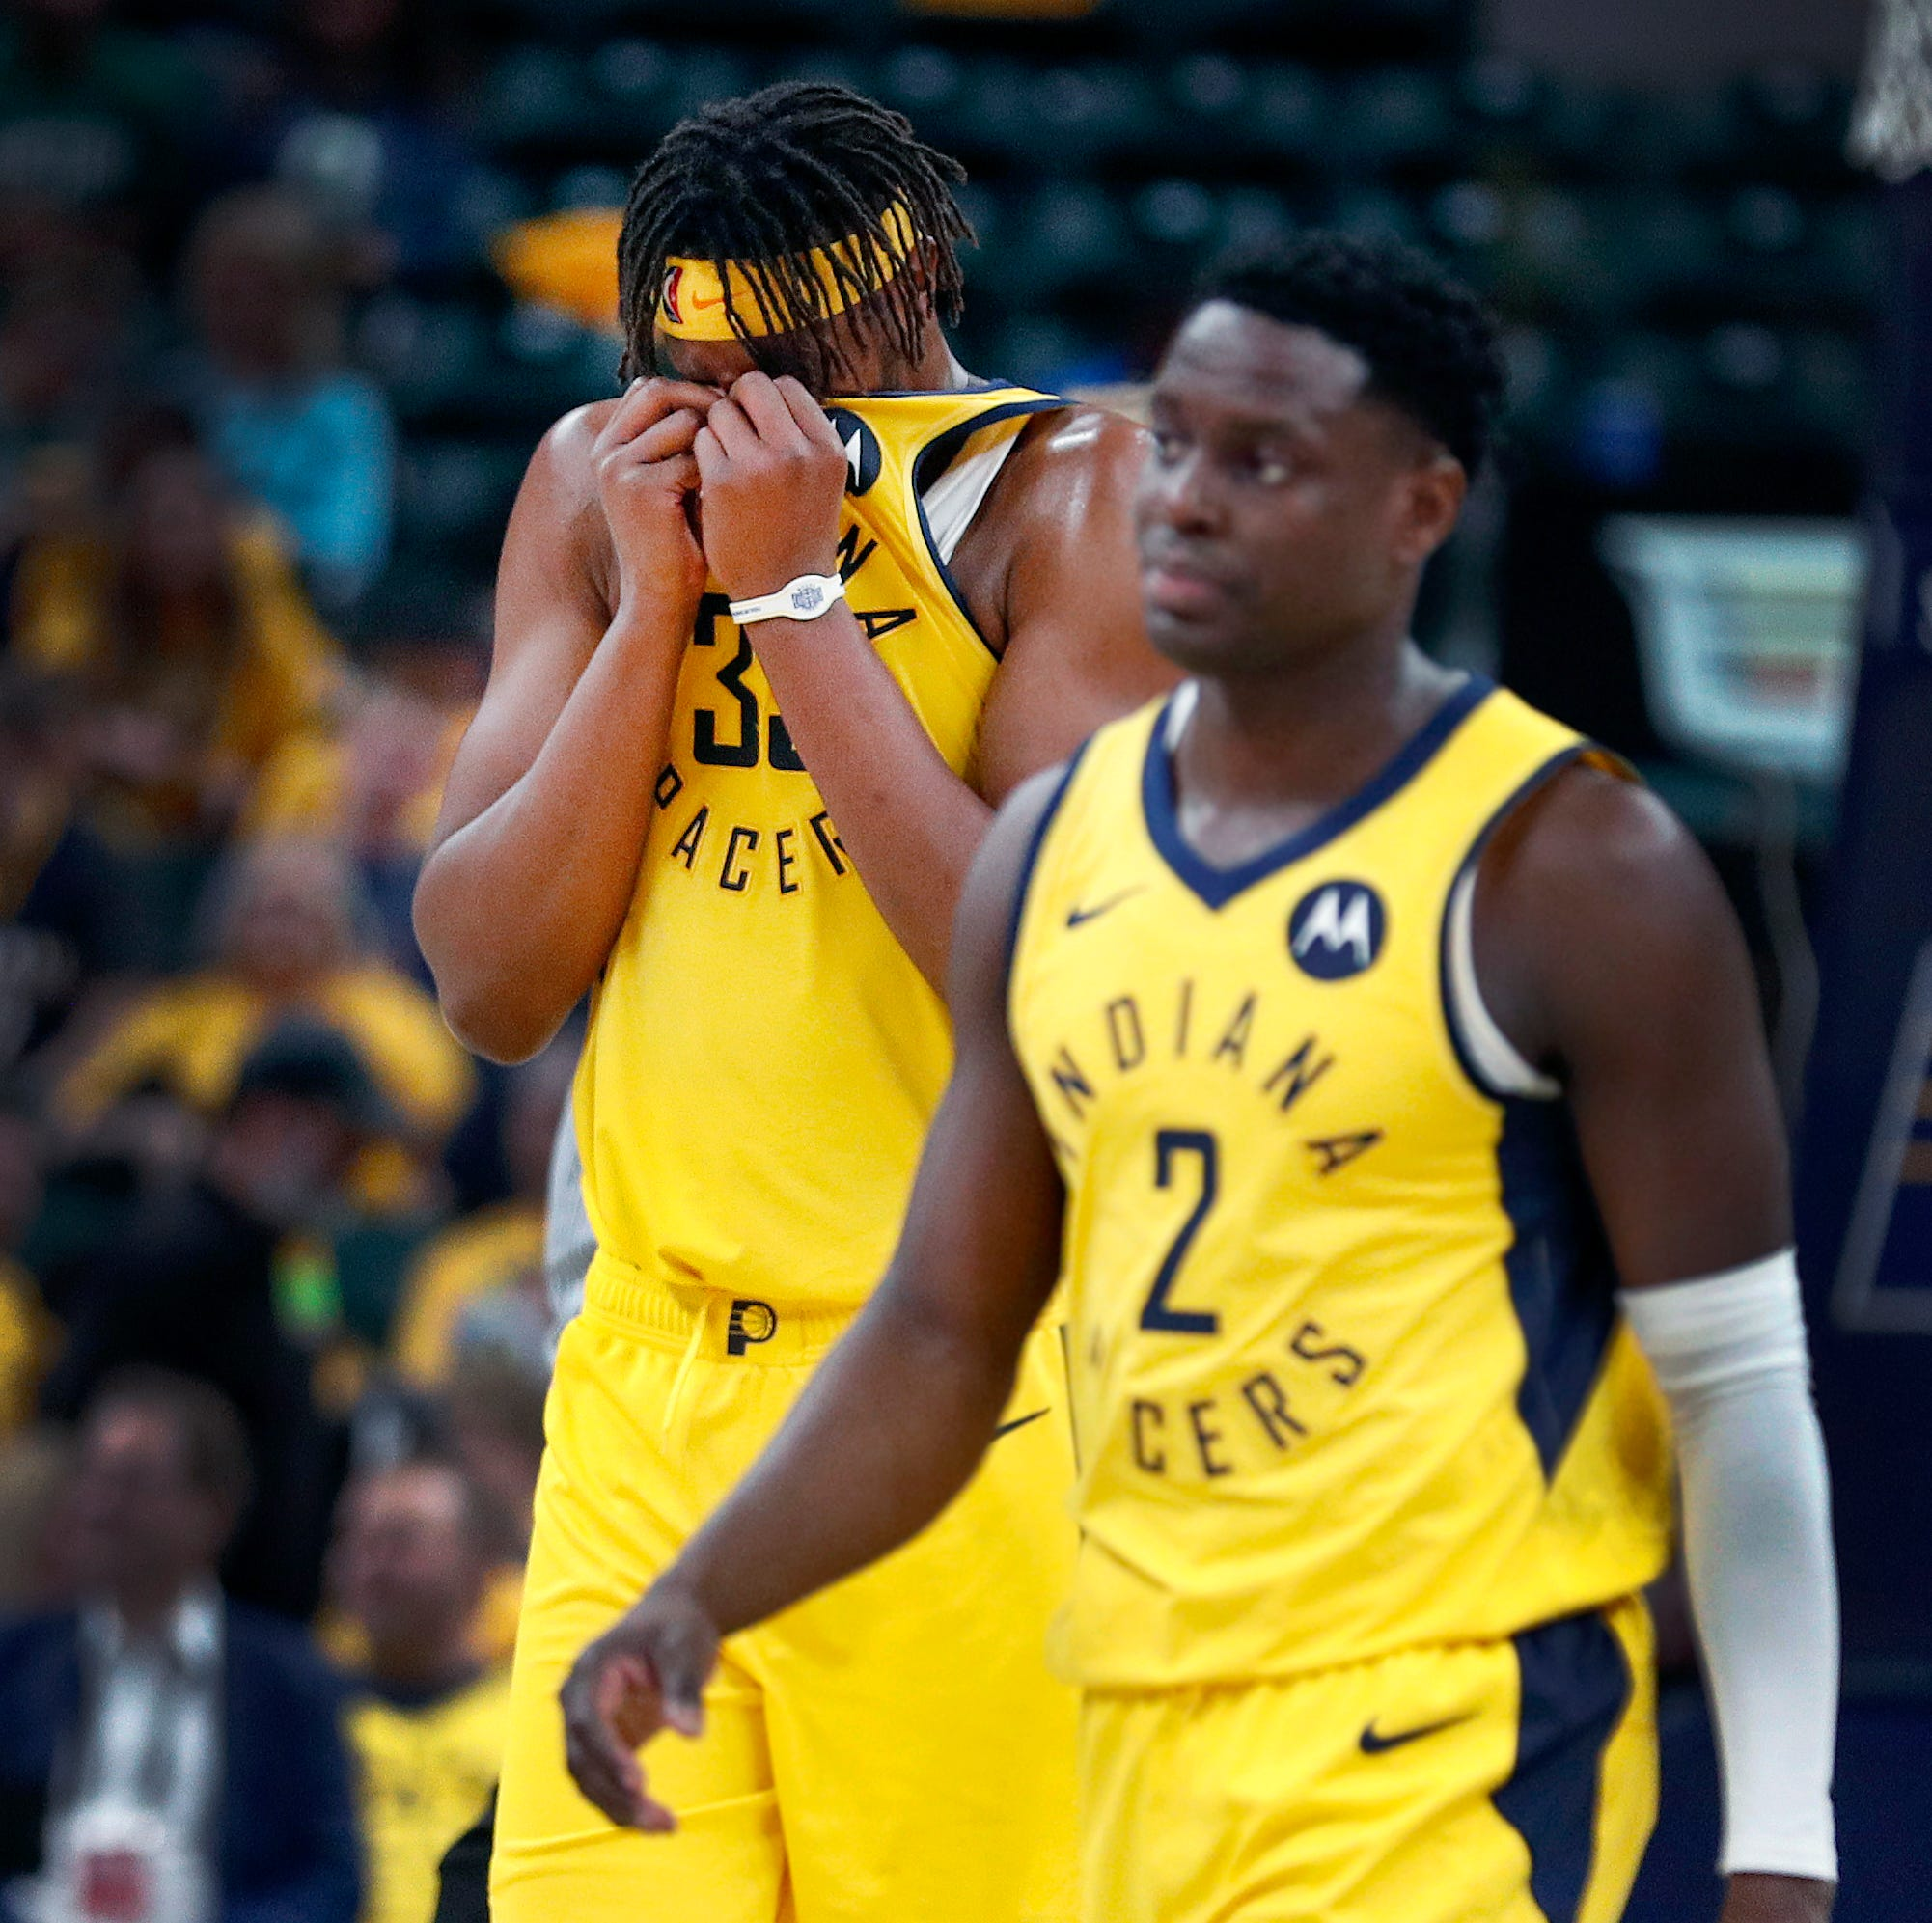 Insider: This is a different series if the Pacers have Victor Oladipo